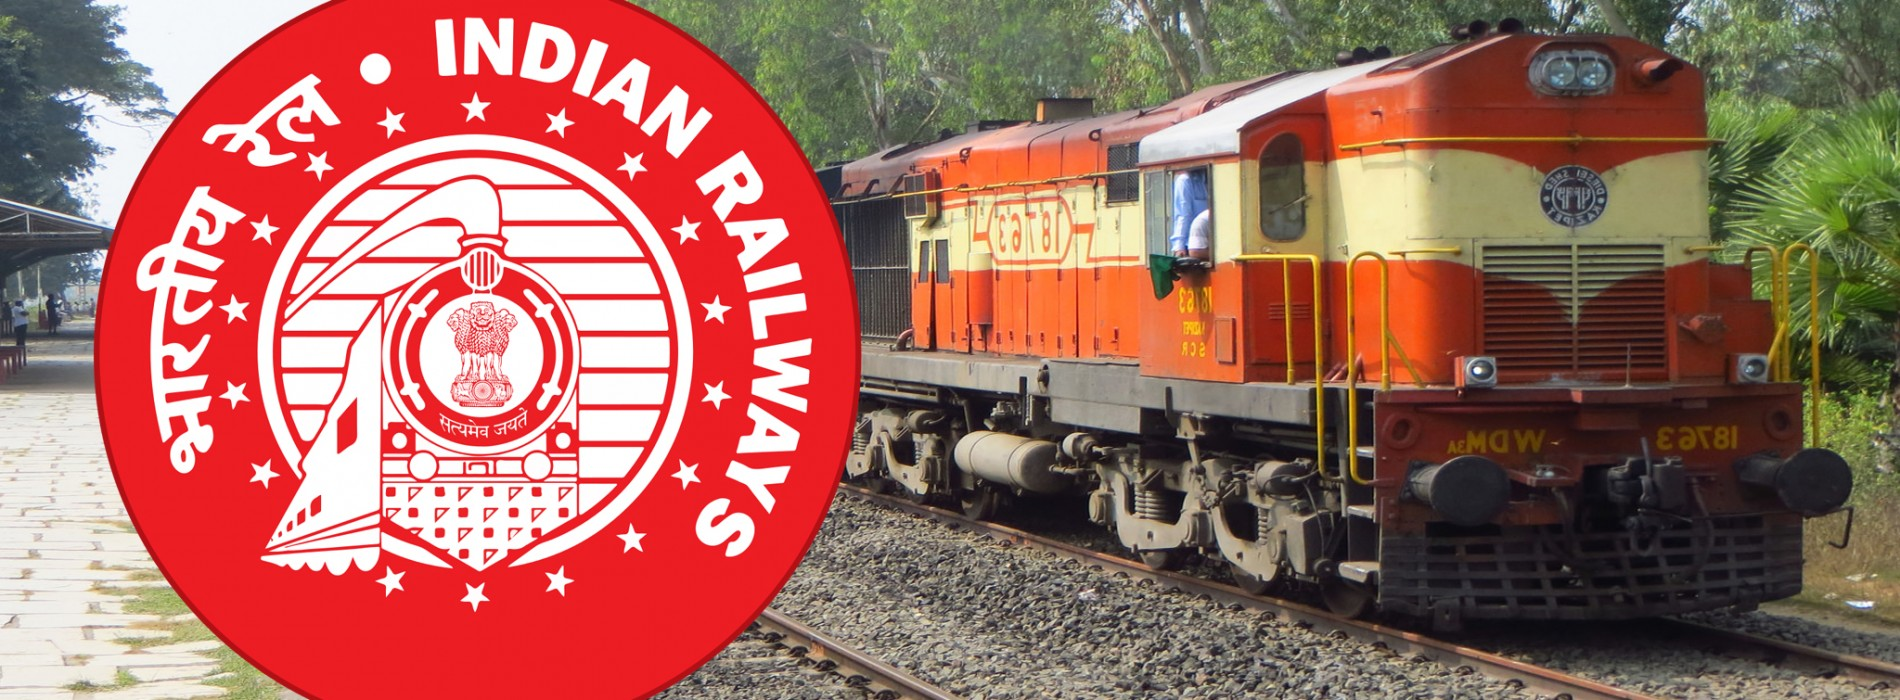 Railway Ministry all set to launch Shri Ramayana Express from November 14